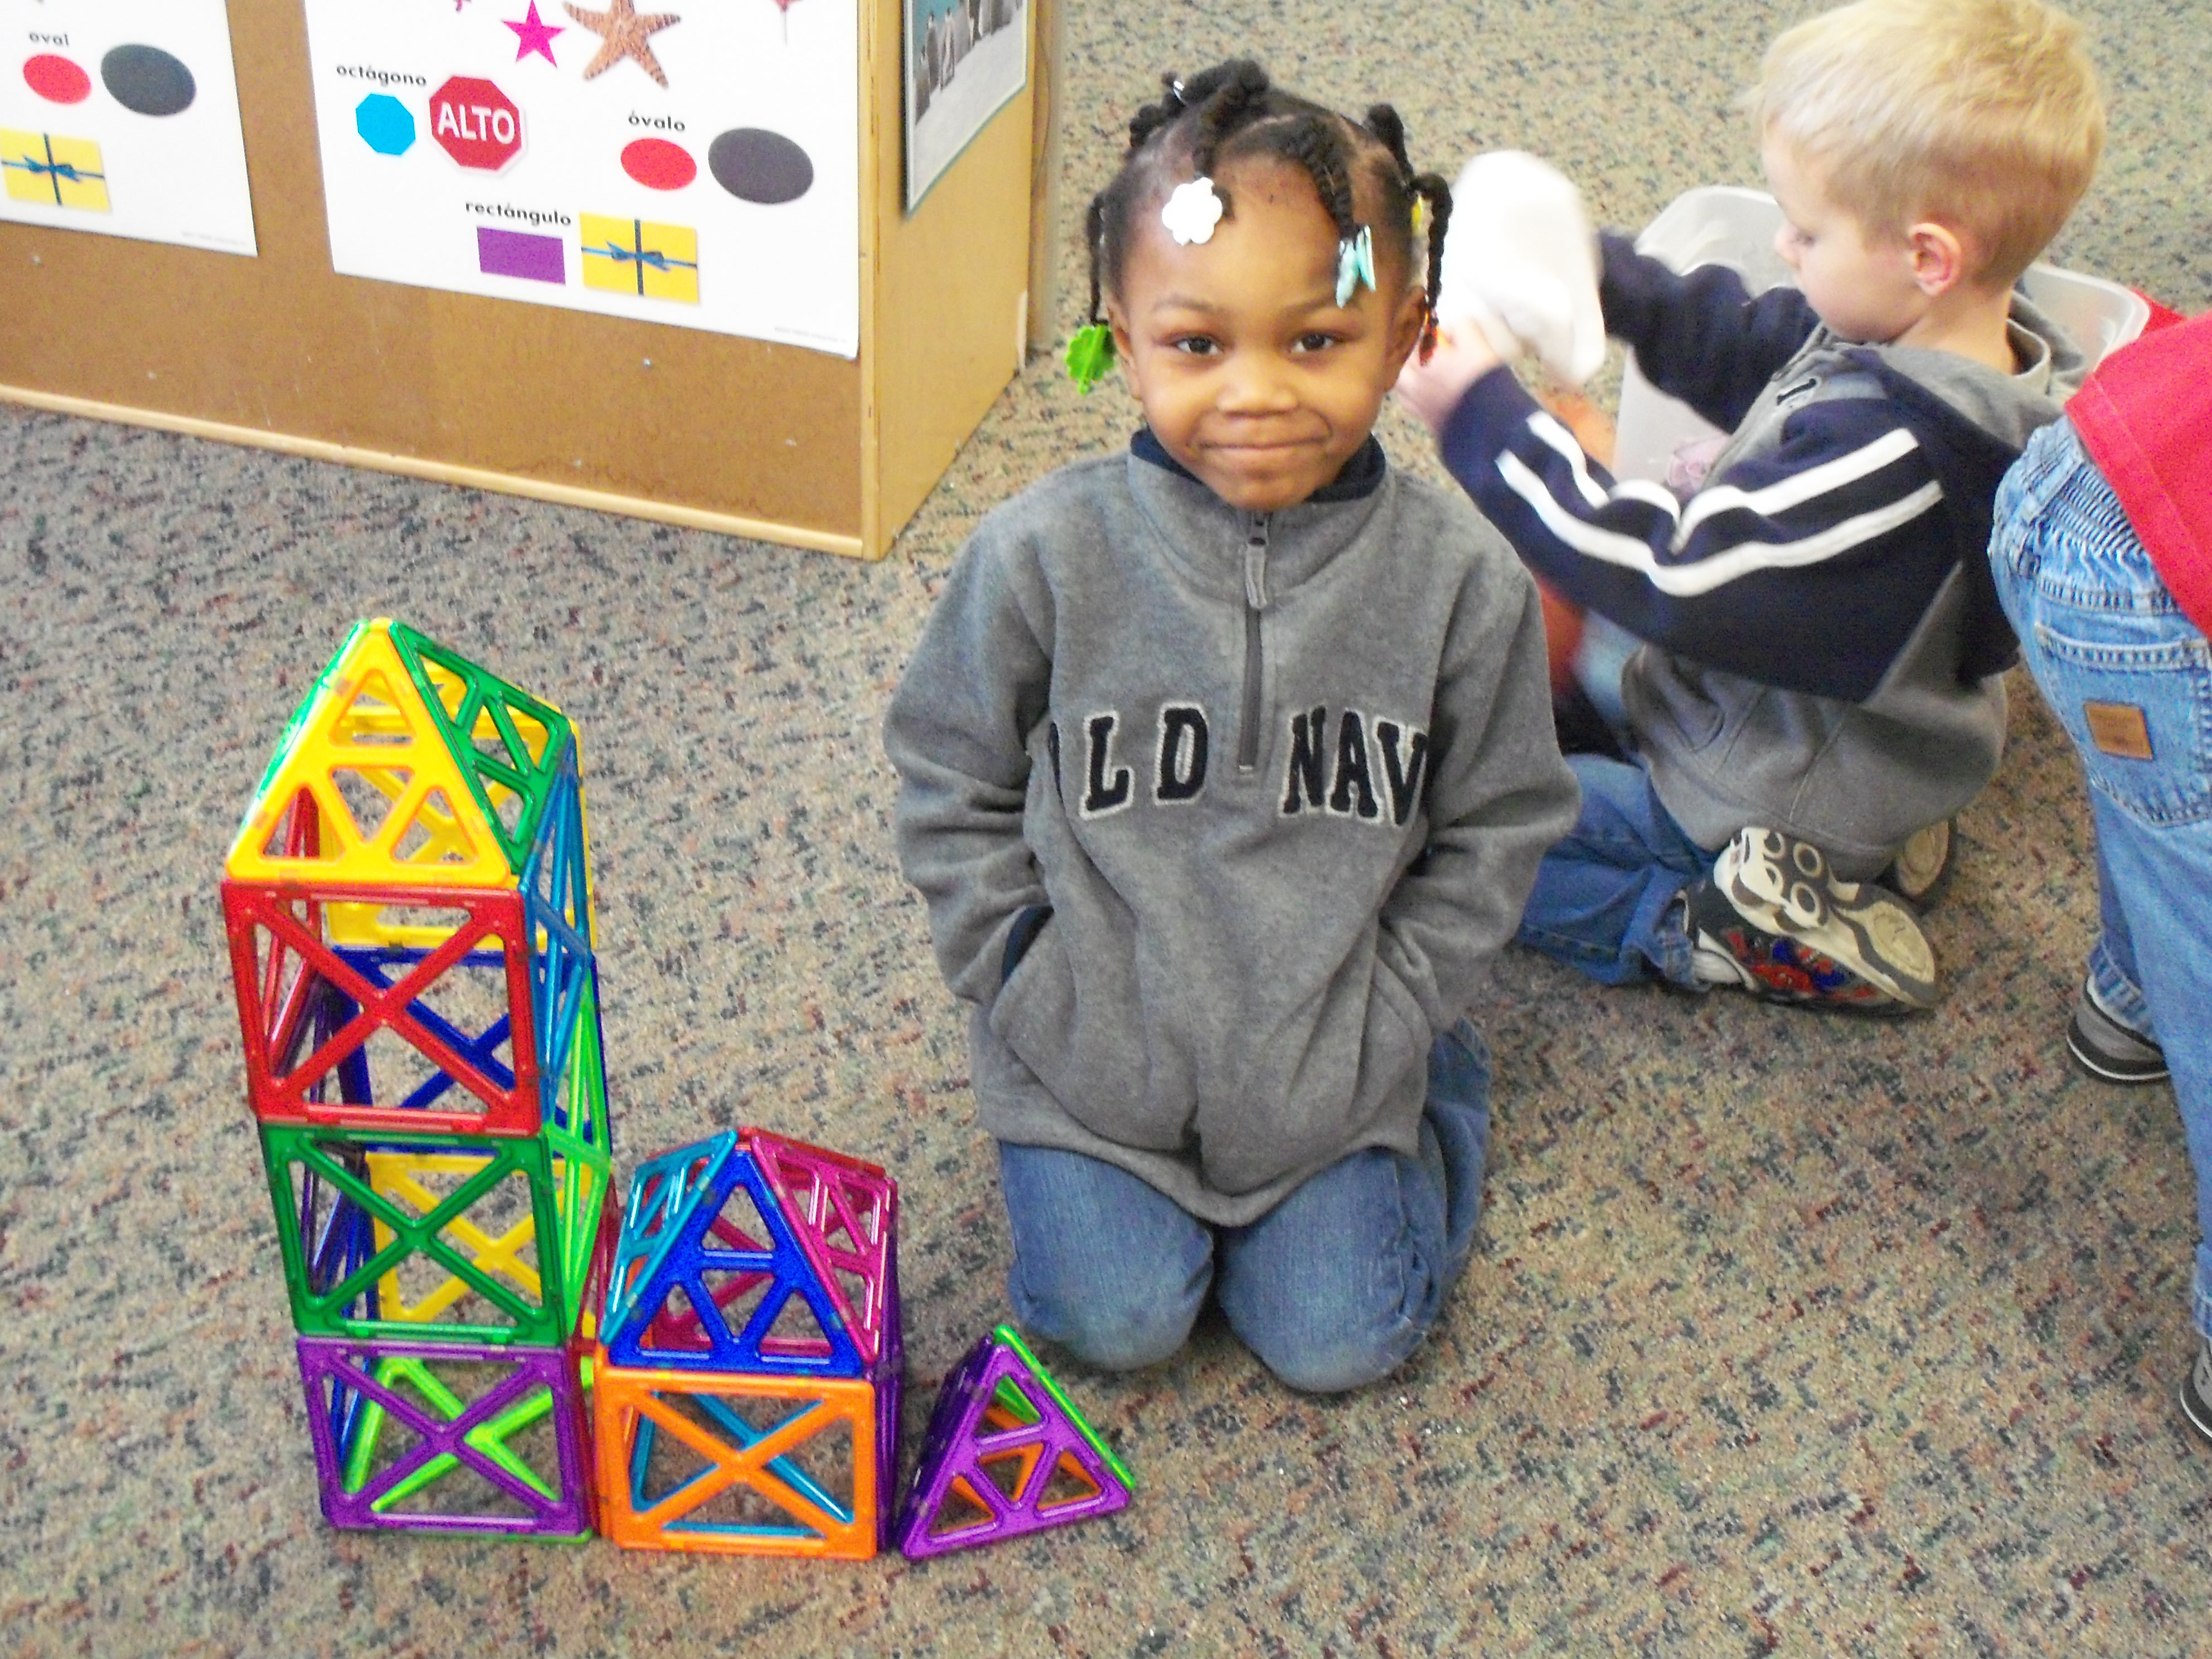 Child Development Center building blocks